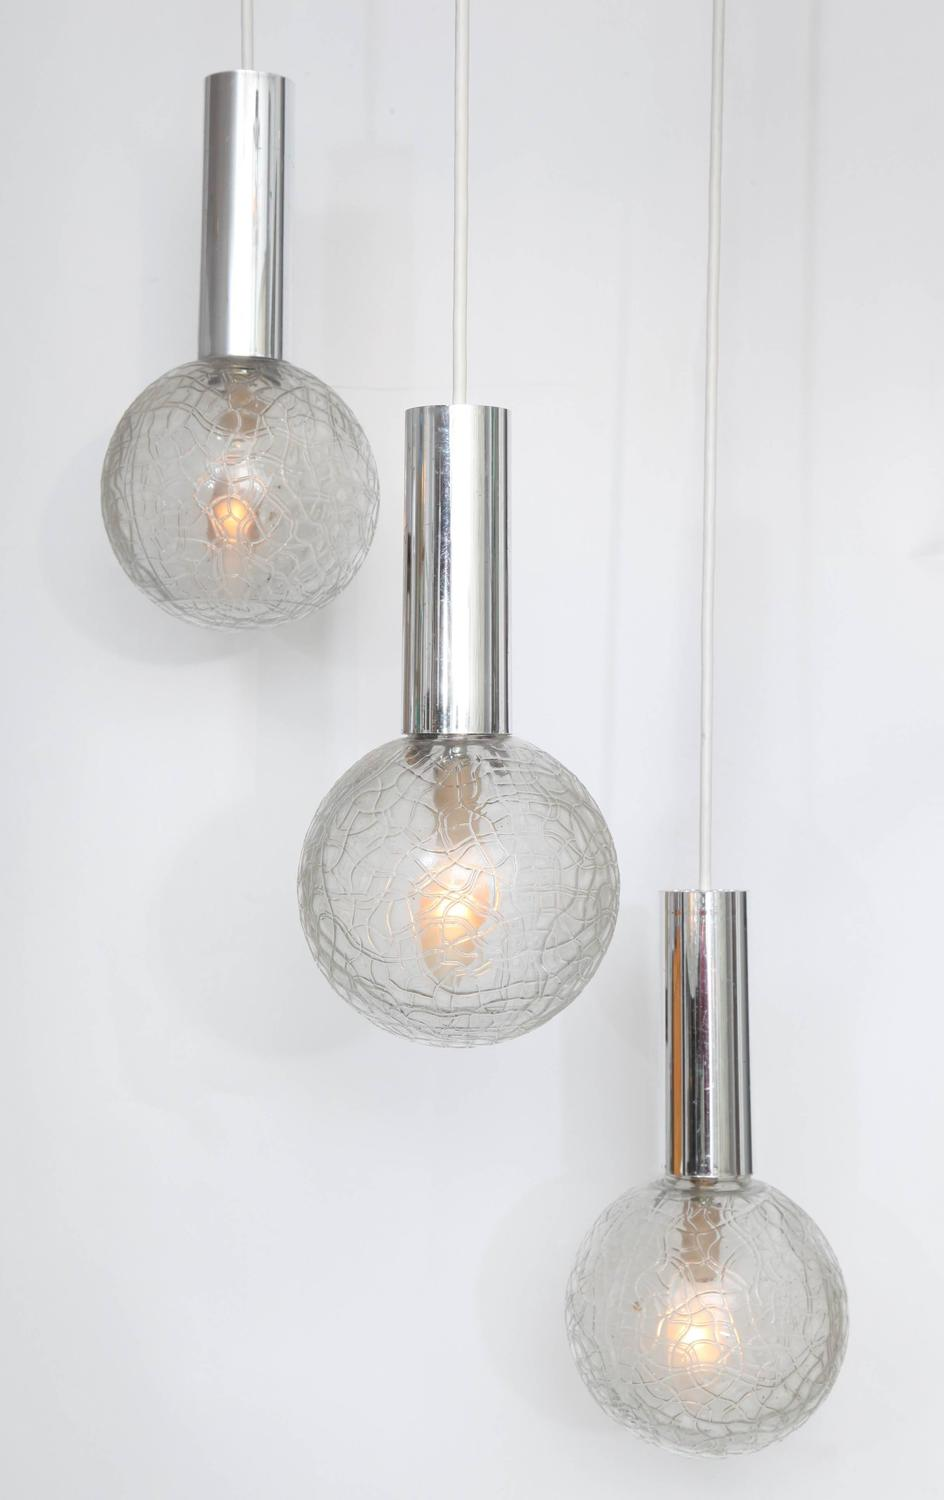 Three Globed Pendant Light Fixture For Sale At 1stdibs